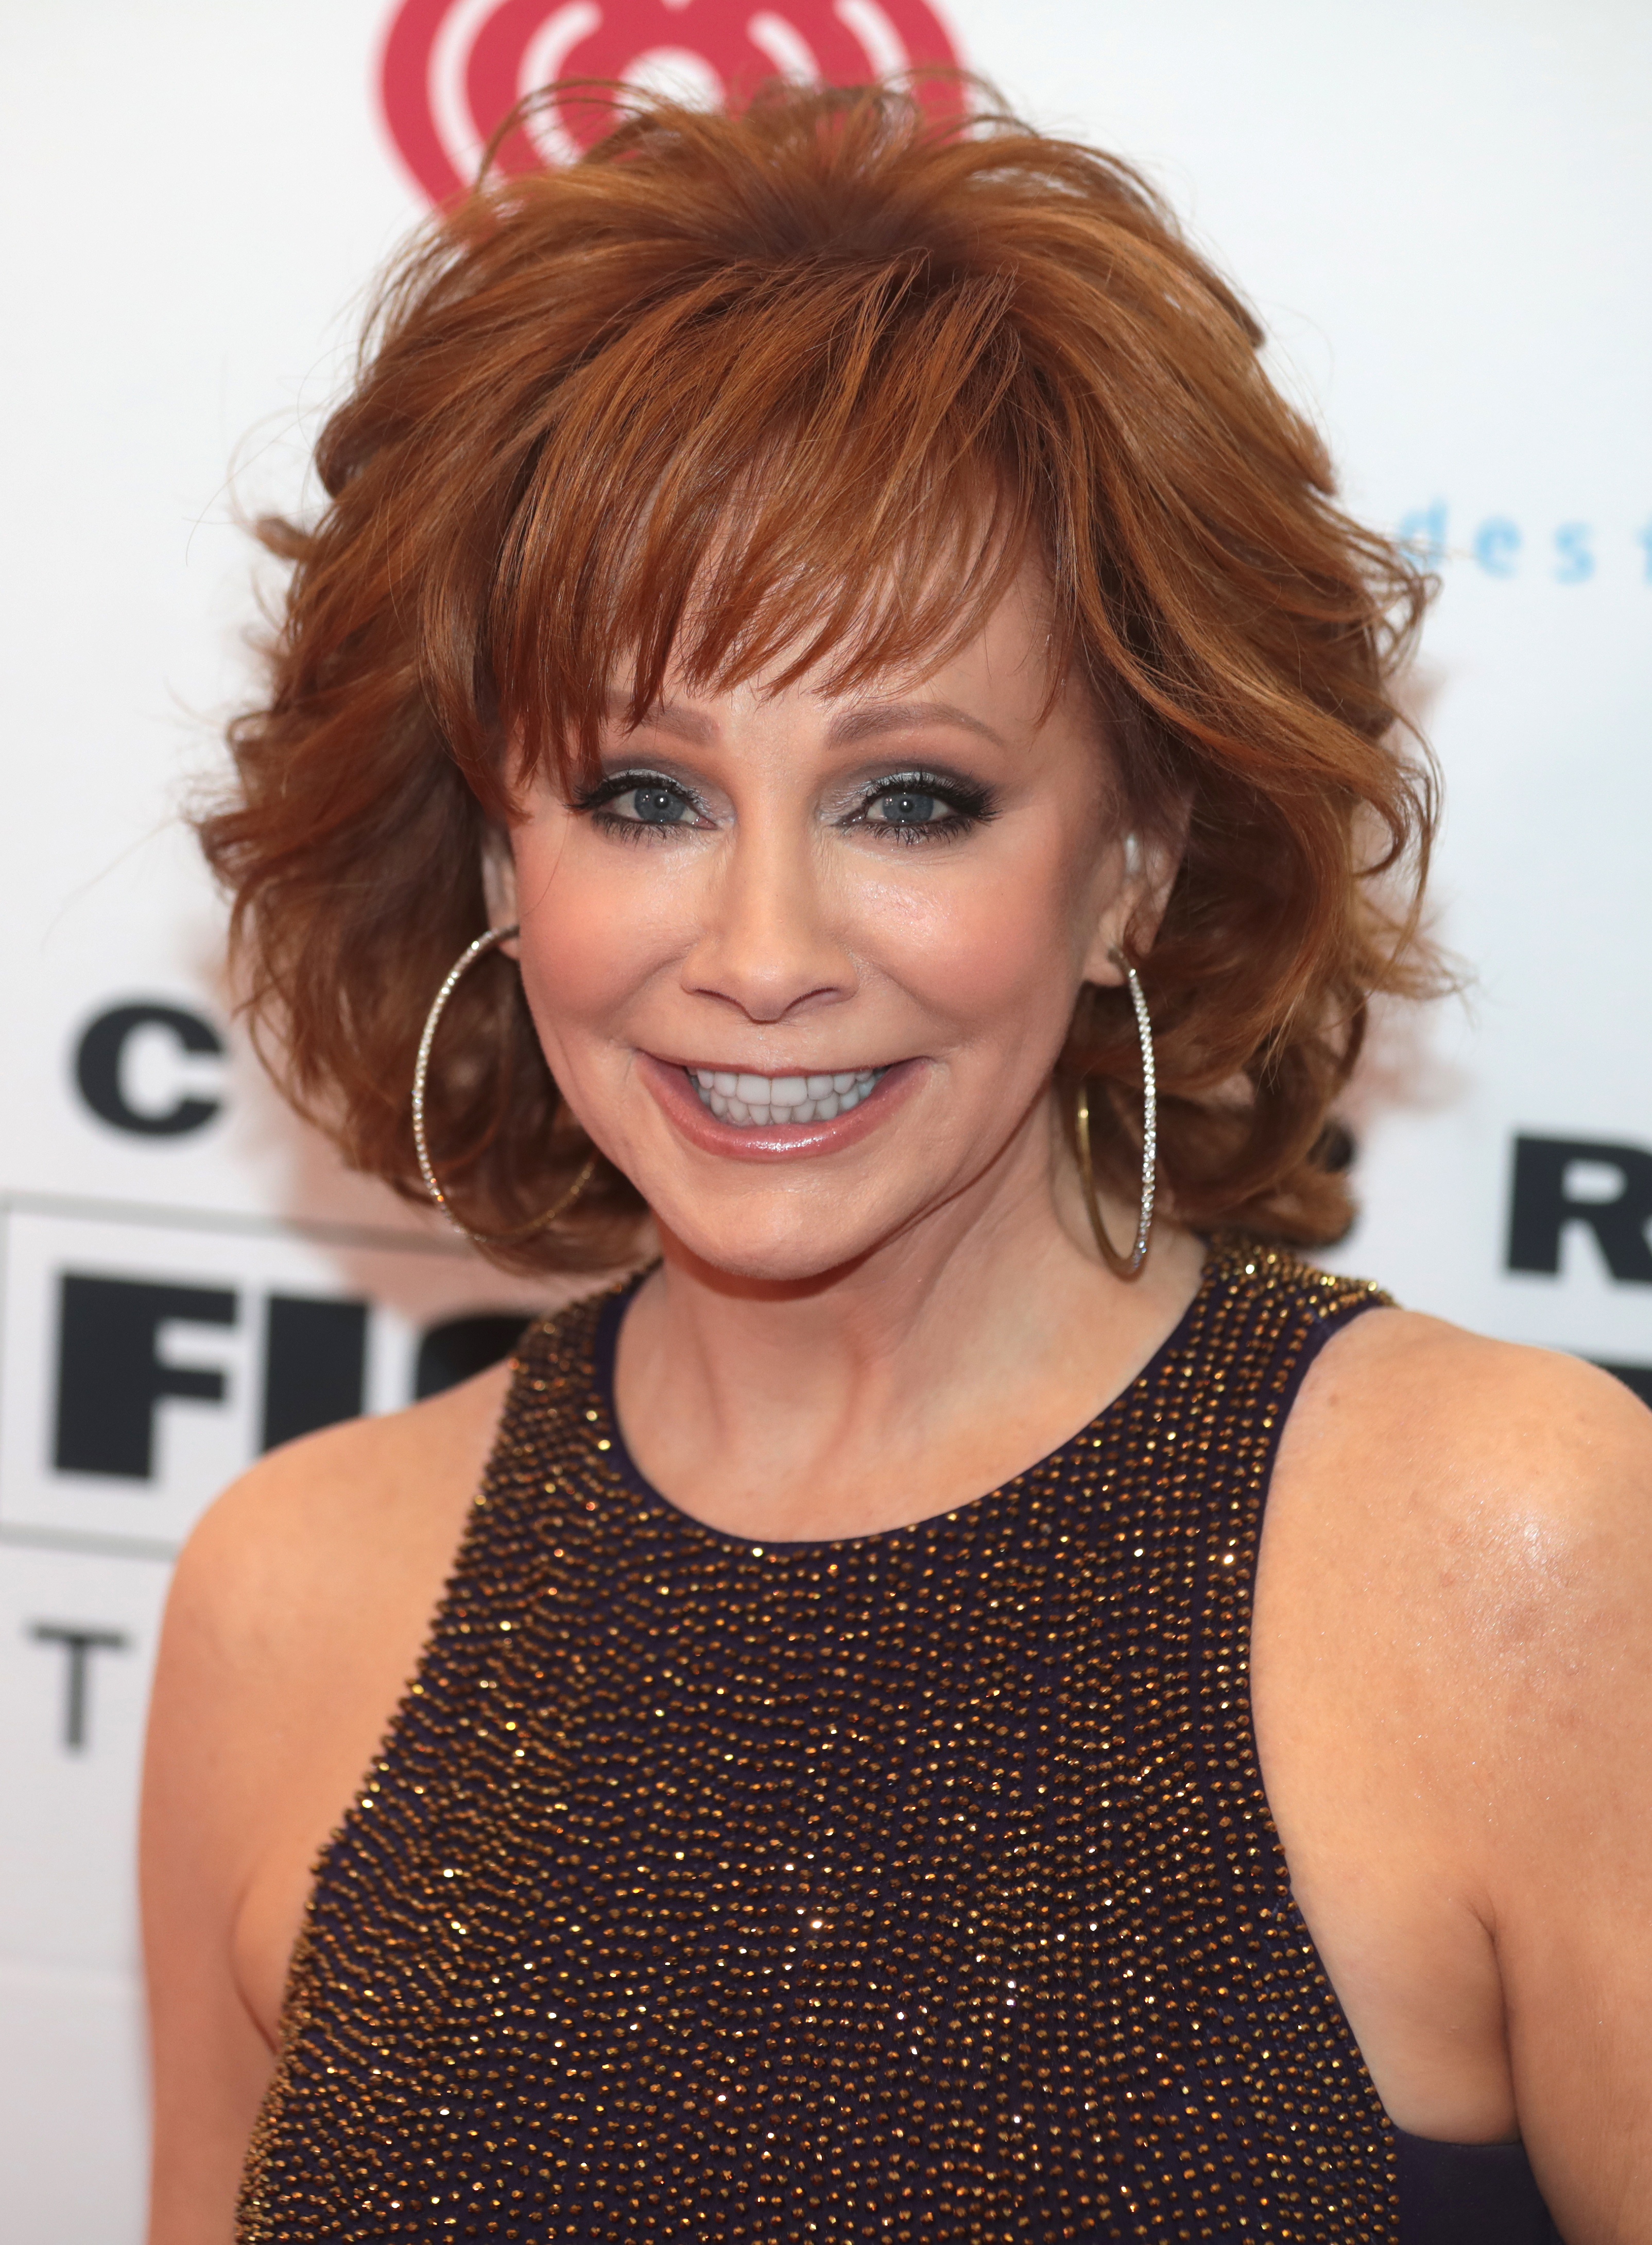 Image result for Reba McEntire Photo